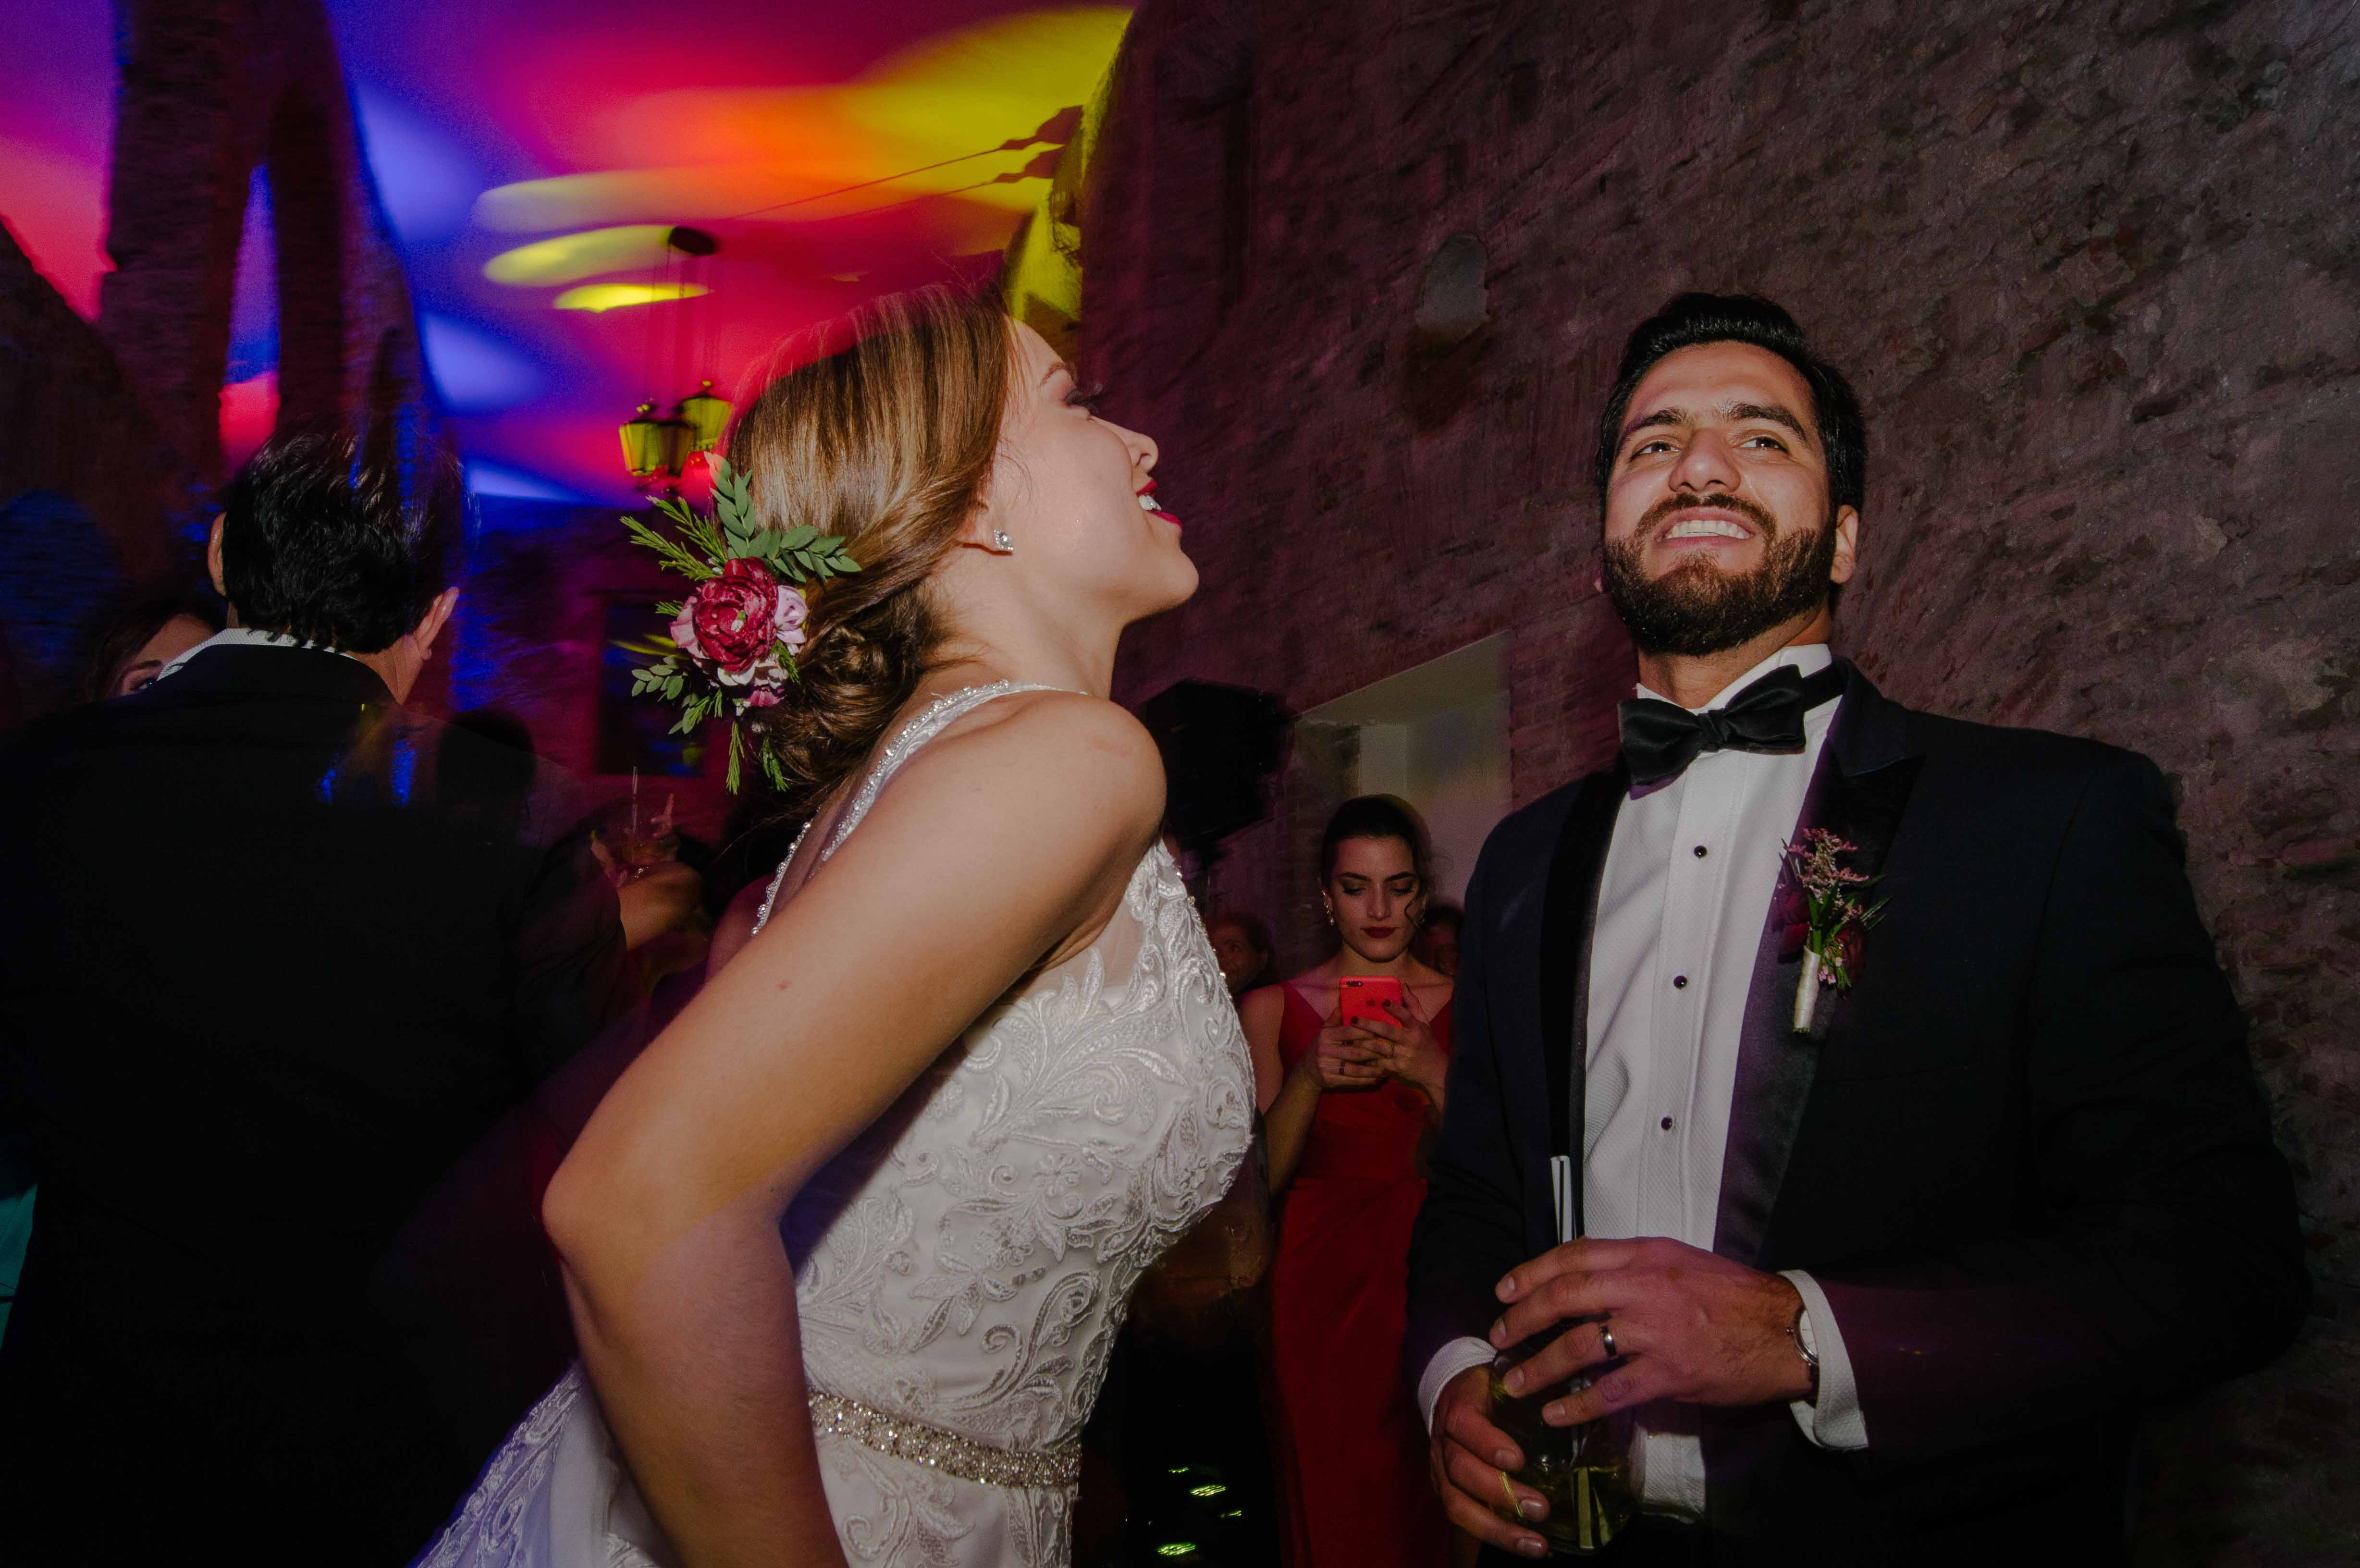 Bride and groom dancing with glasses in wedding party